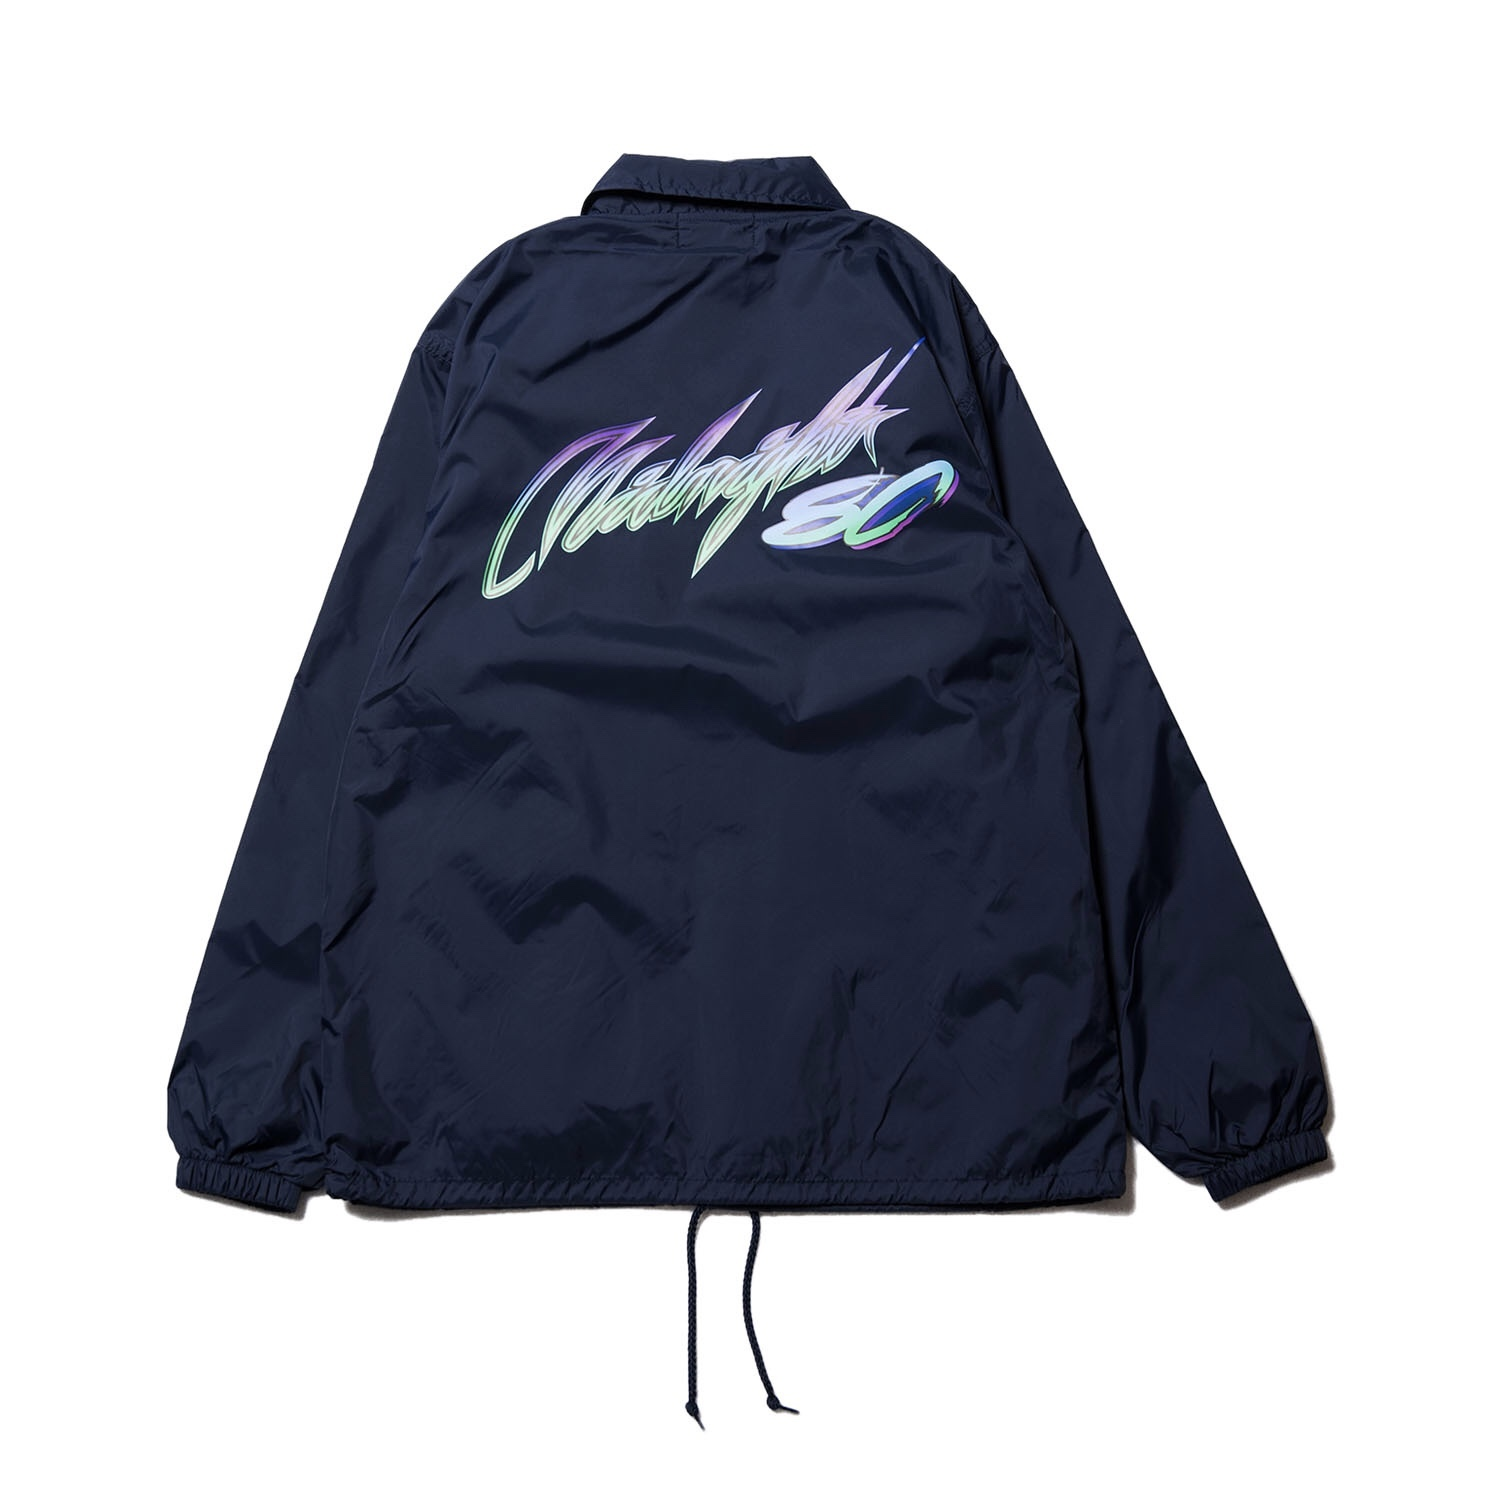 Midnight80 coach jacket / NAVY - 画像2